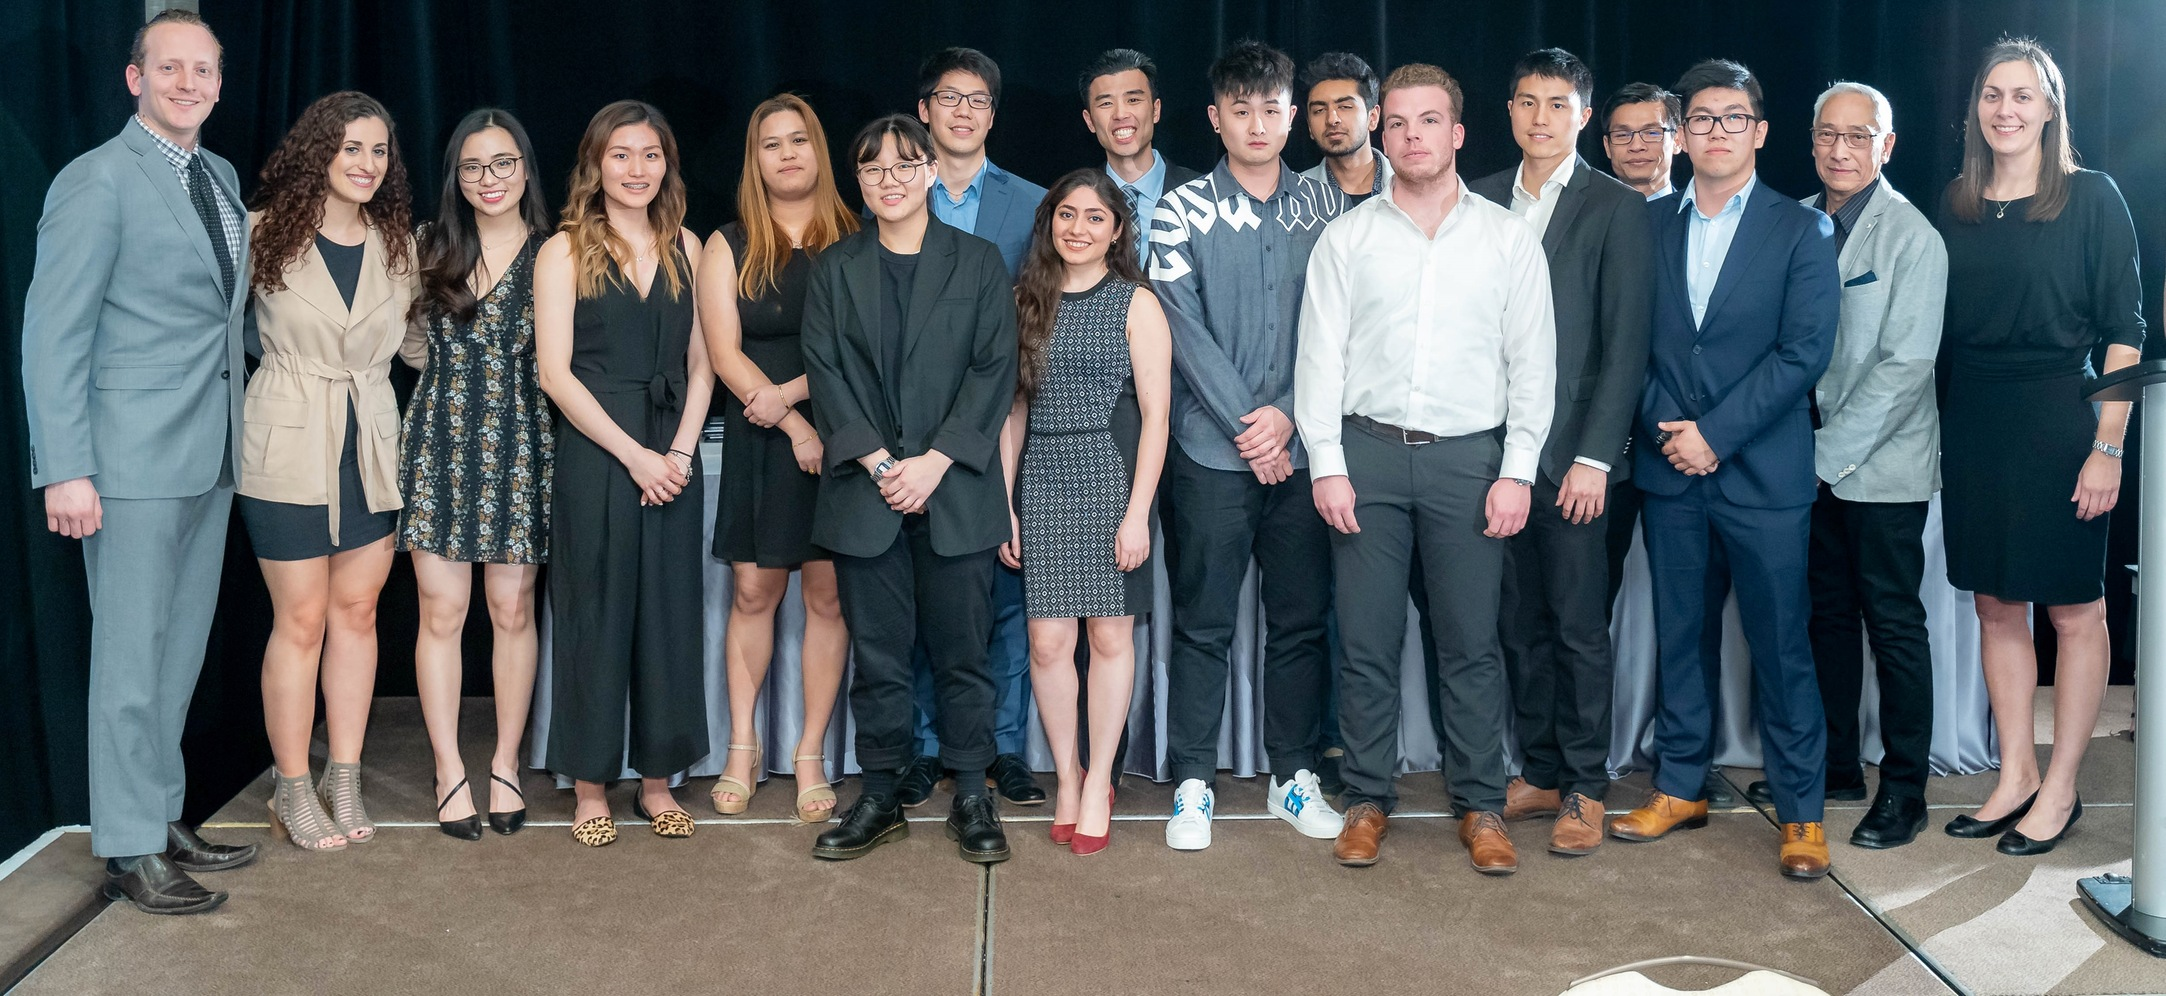 GEORGE BROWN ATHLETICS AND RECREATION CELEBRATES A FANTASTIC SEASON AT THE 50TH ANNUAL ATHLETIC AWARDS BANQUET